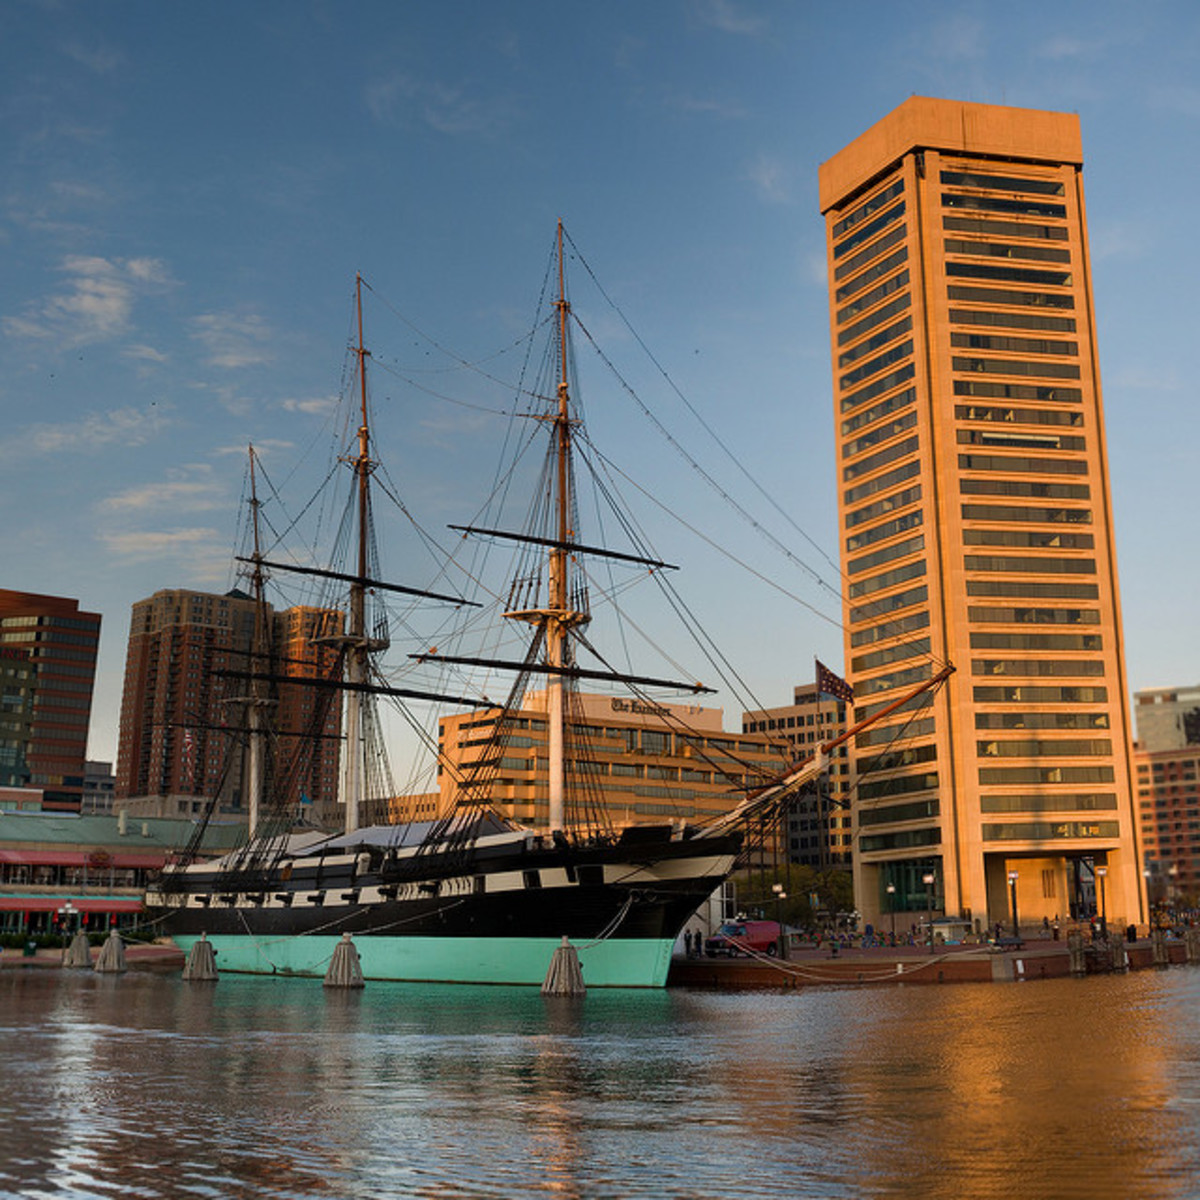 Tour a Tall Ship